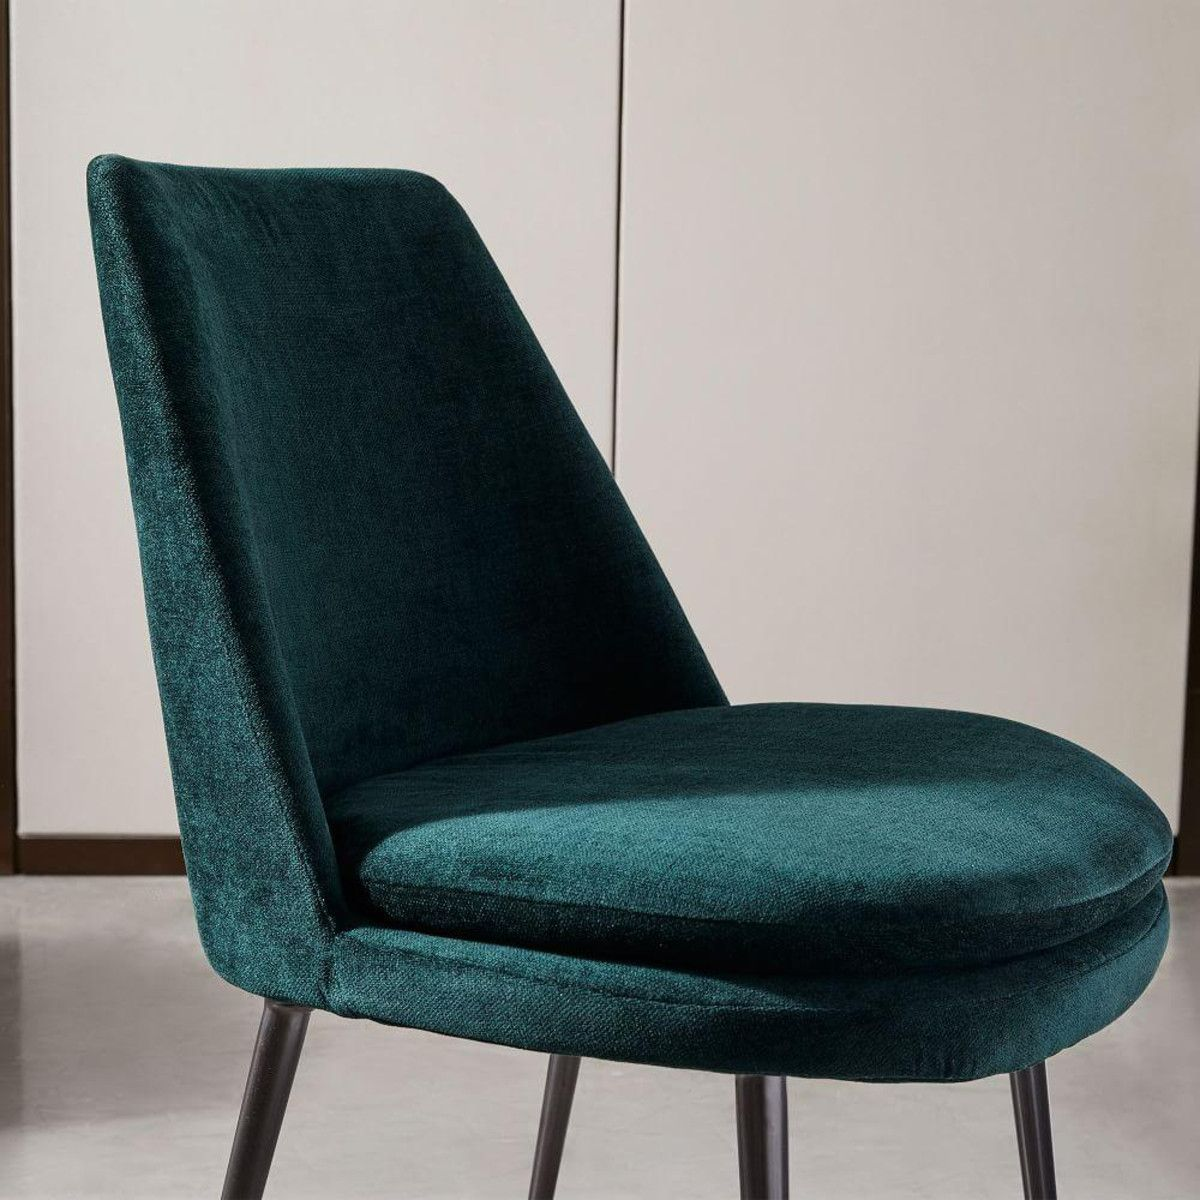 low back dining chairs. Finley Low-Back Velvet Dining Chair Low Back Chairs